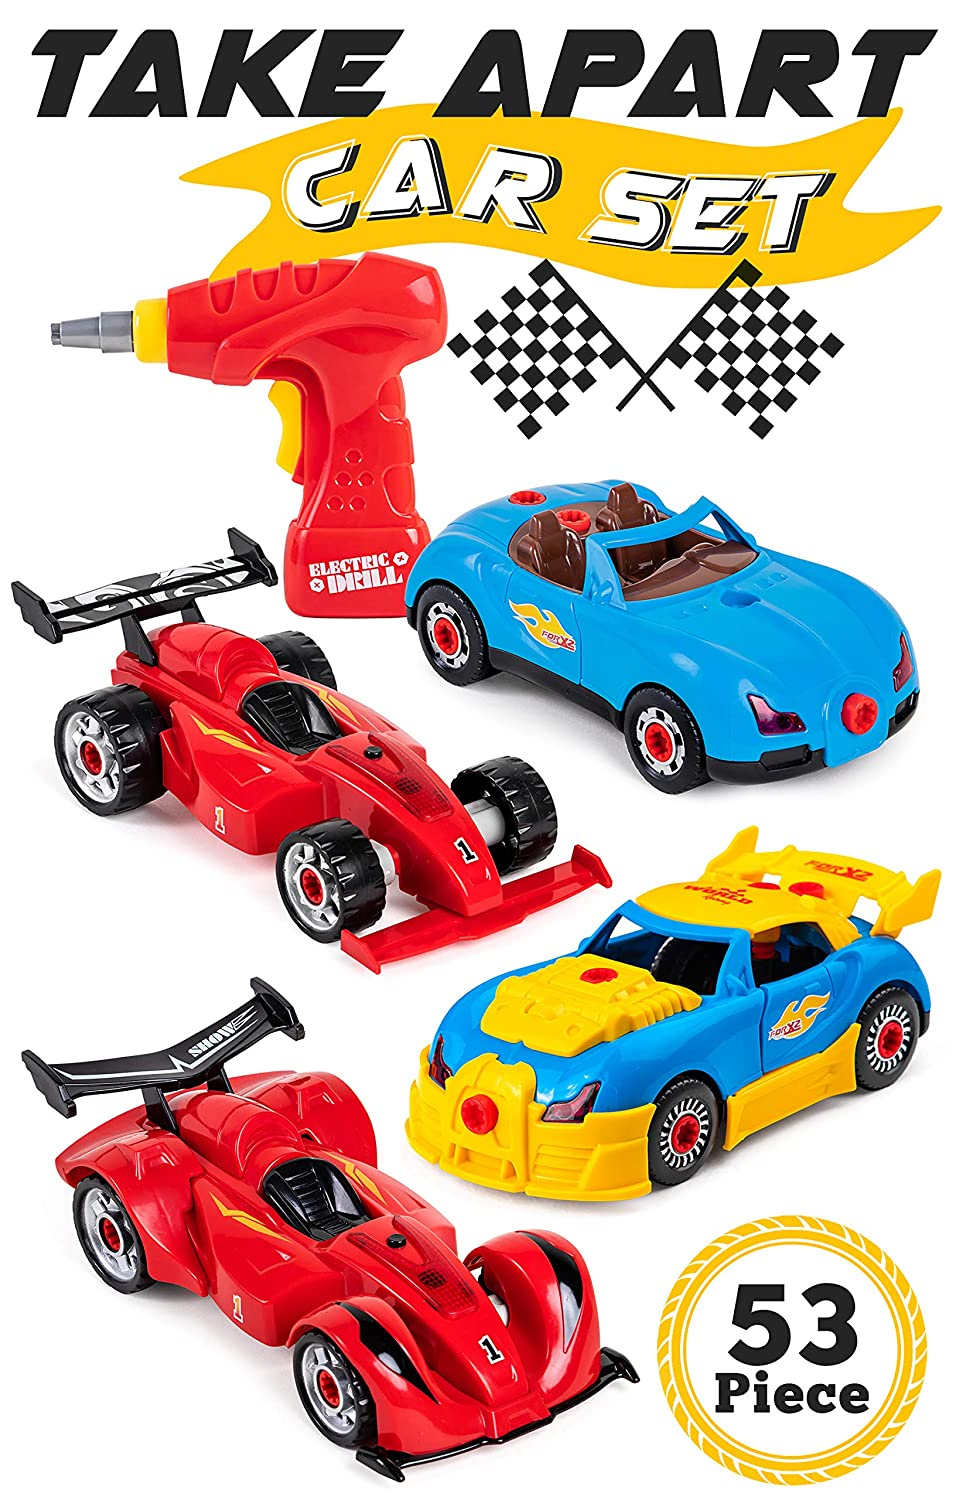 53-Piece Gift for Boys Racing Car Take Apart Toy Set for Kids STEM Toys Construction Building Kit with 2 Cars and Functioning Drill Tool Girls and Toddlers